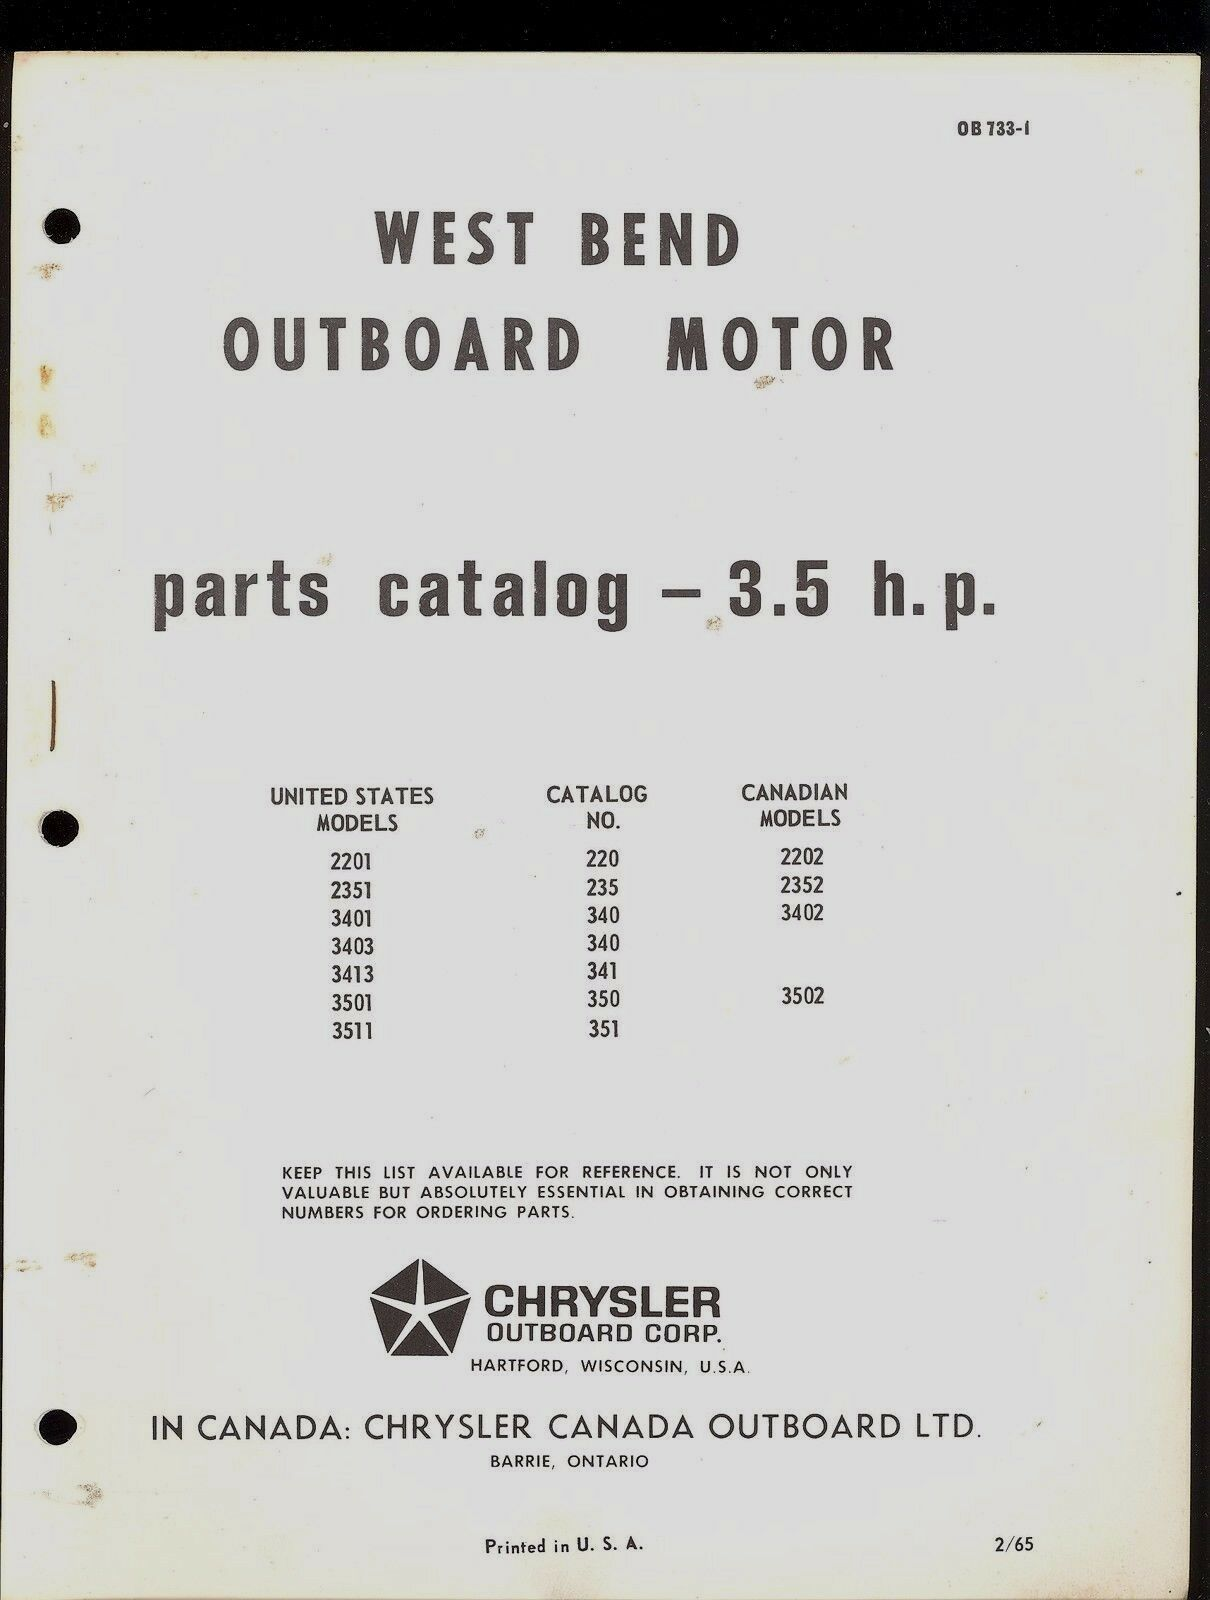 1965 West Bend / Chrysler 3.5Hp Outboar Motor Parts Manual / Ob733-1 1 of  1Only 1 available ...